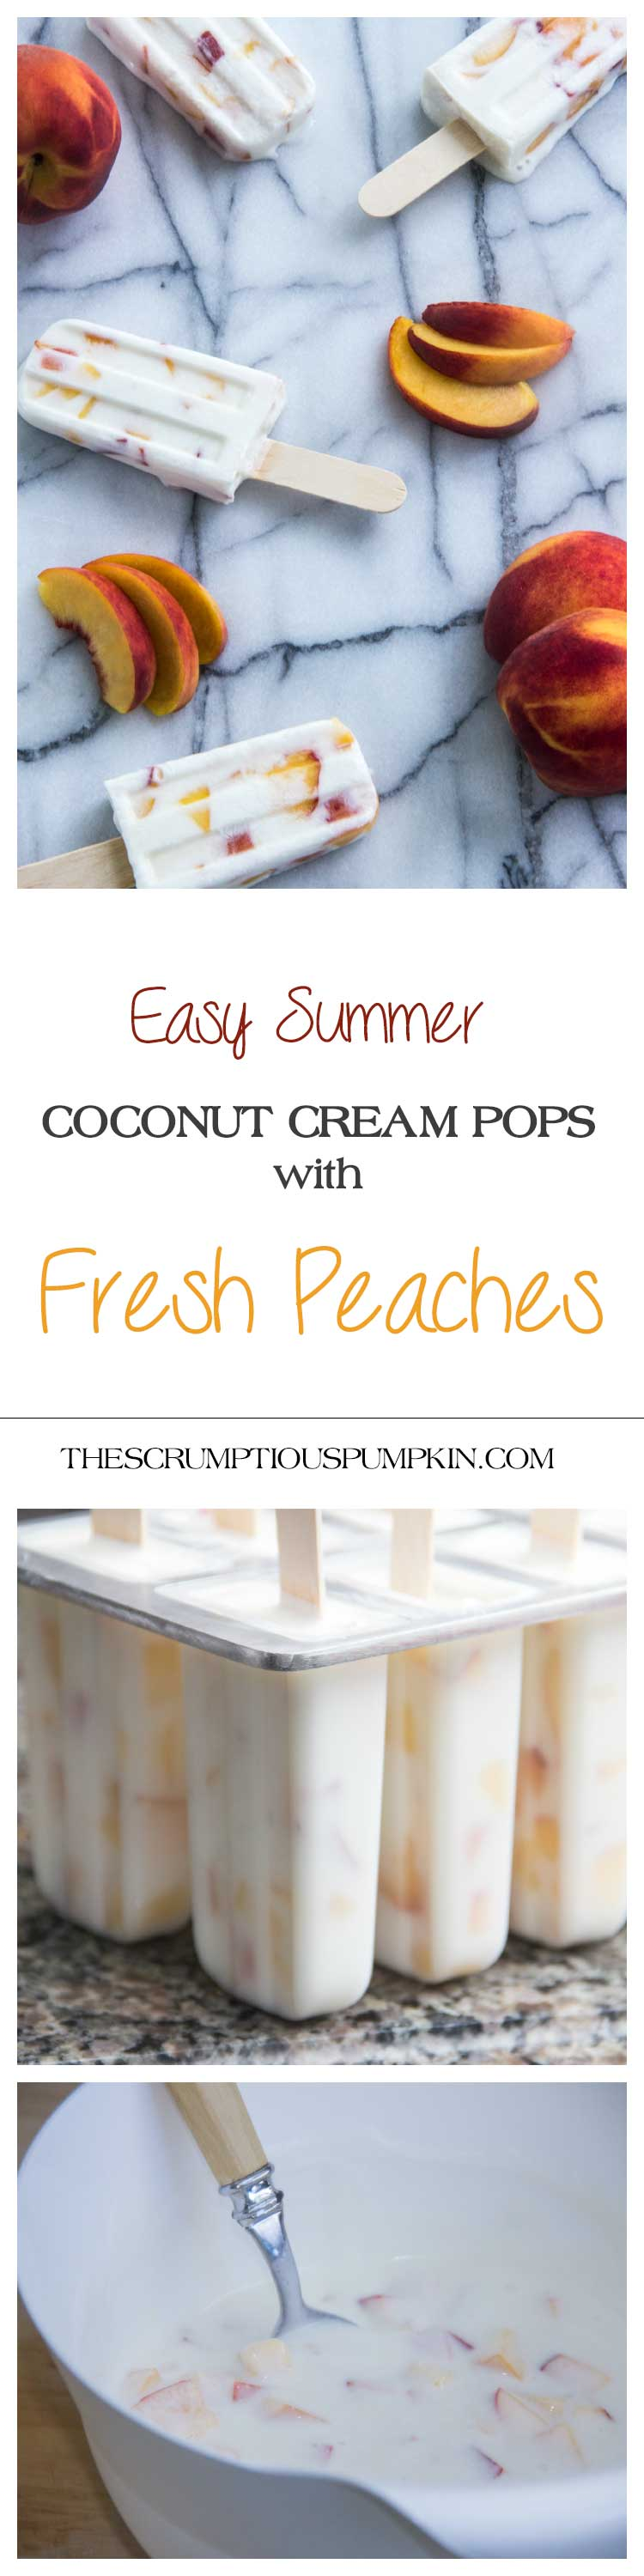 Easy-Summer-Coconut-Cream-Pops-with-Fresh-Peaches